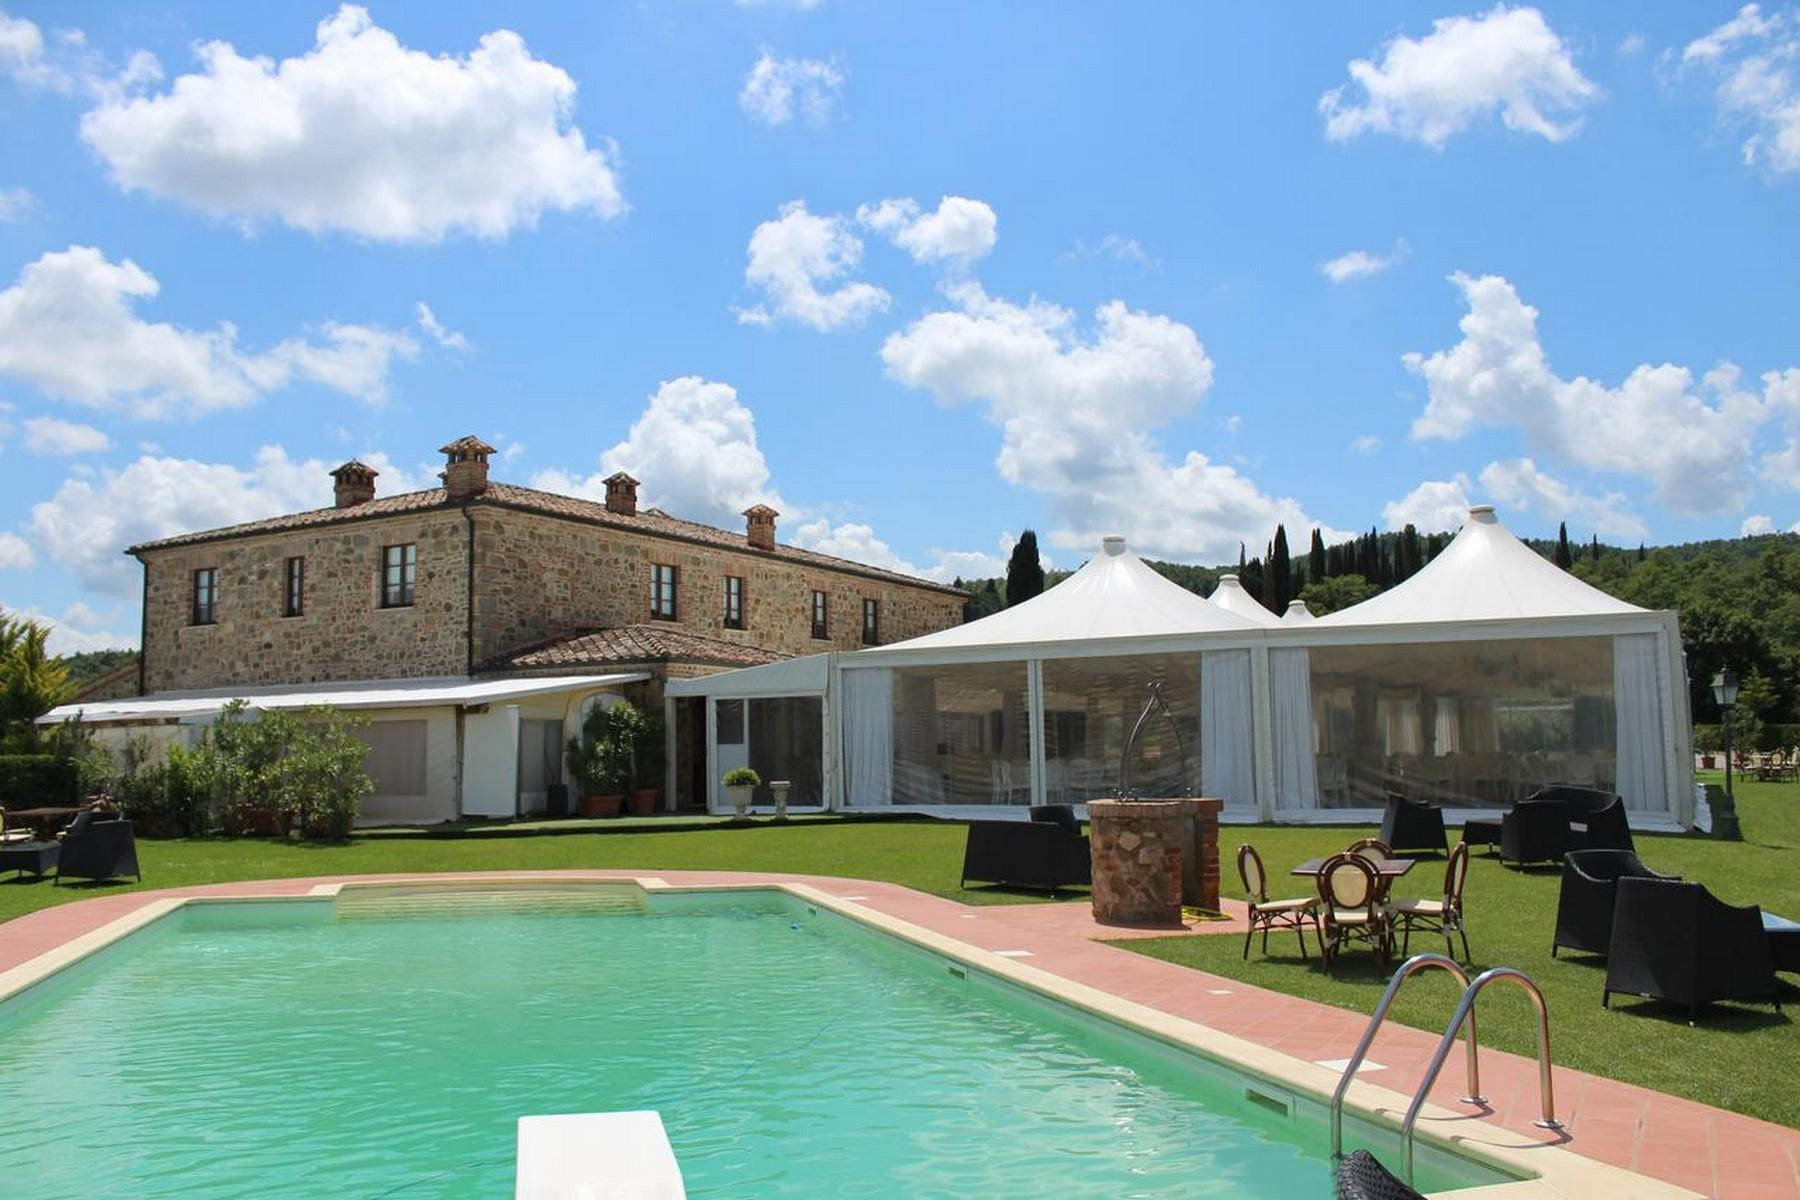 Beautiful Boutique Hotel with Restaurant and SPA in the hills of Torrita di Siena - 9